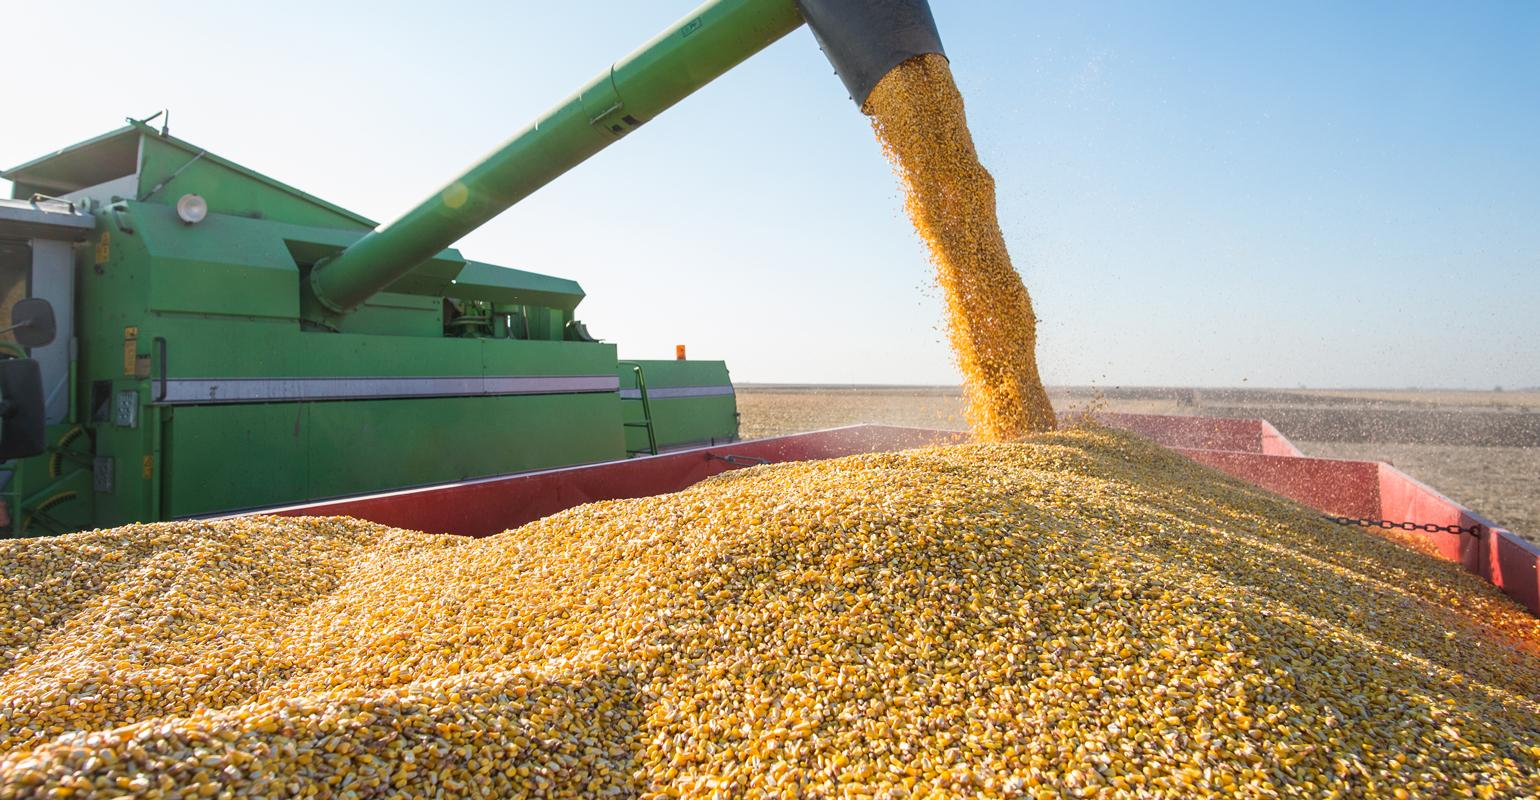 Follow these 6 rules to keep grain in condition